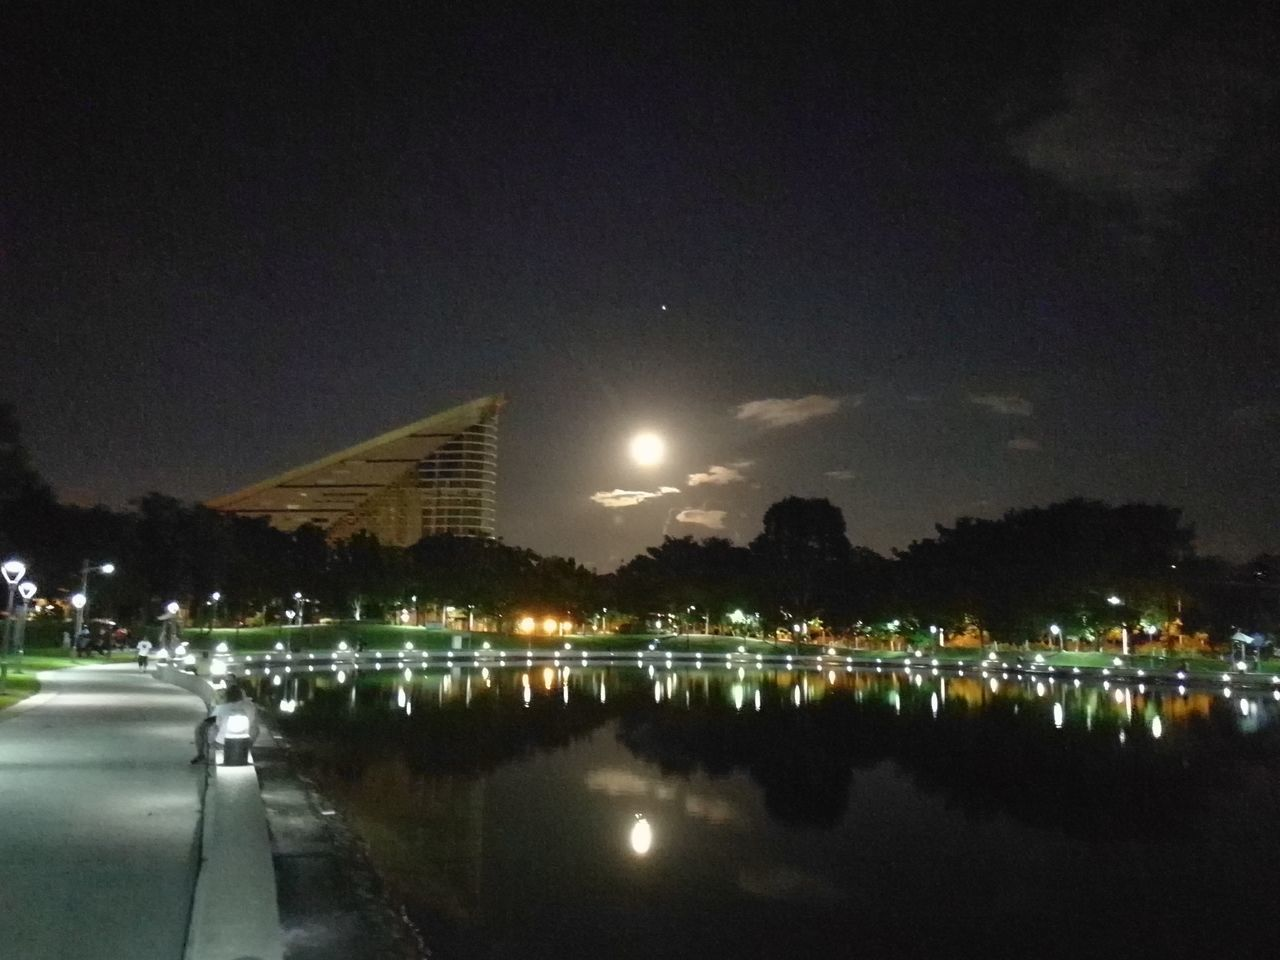 Fullmoontonight Fullmoon At The Sky Fullmoon And Clouds Sky And Clouds Sky And City Tree And Sky Life In Colors Skylover Borneo Nightlife